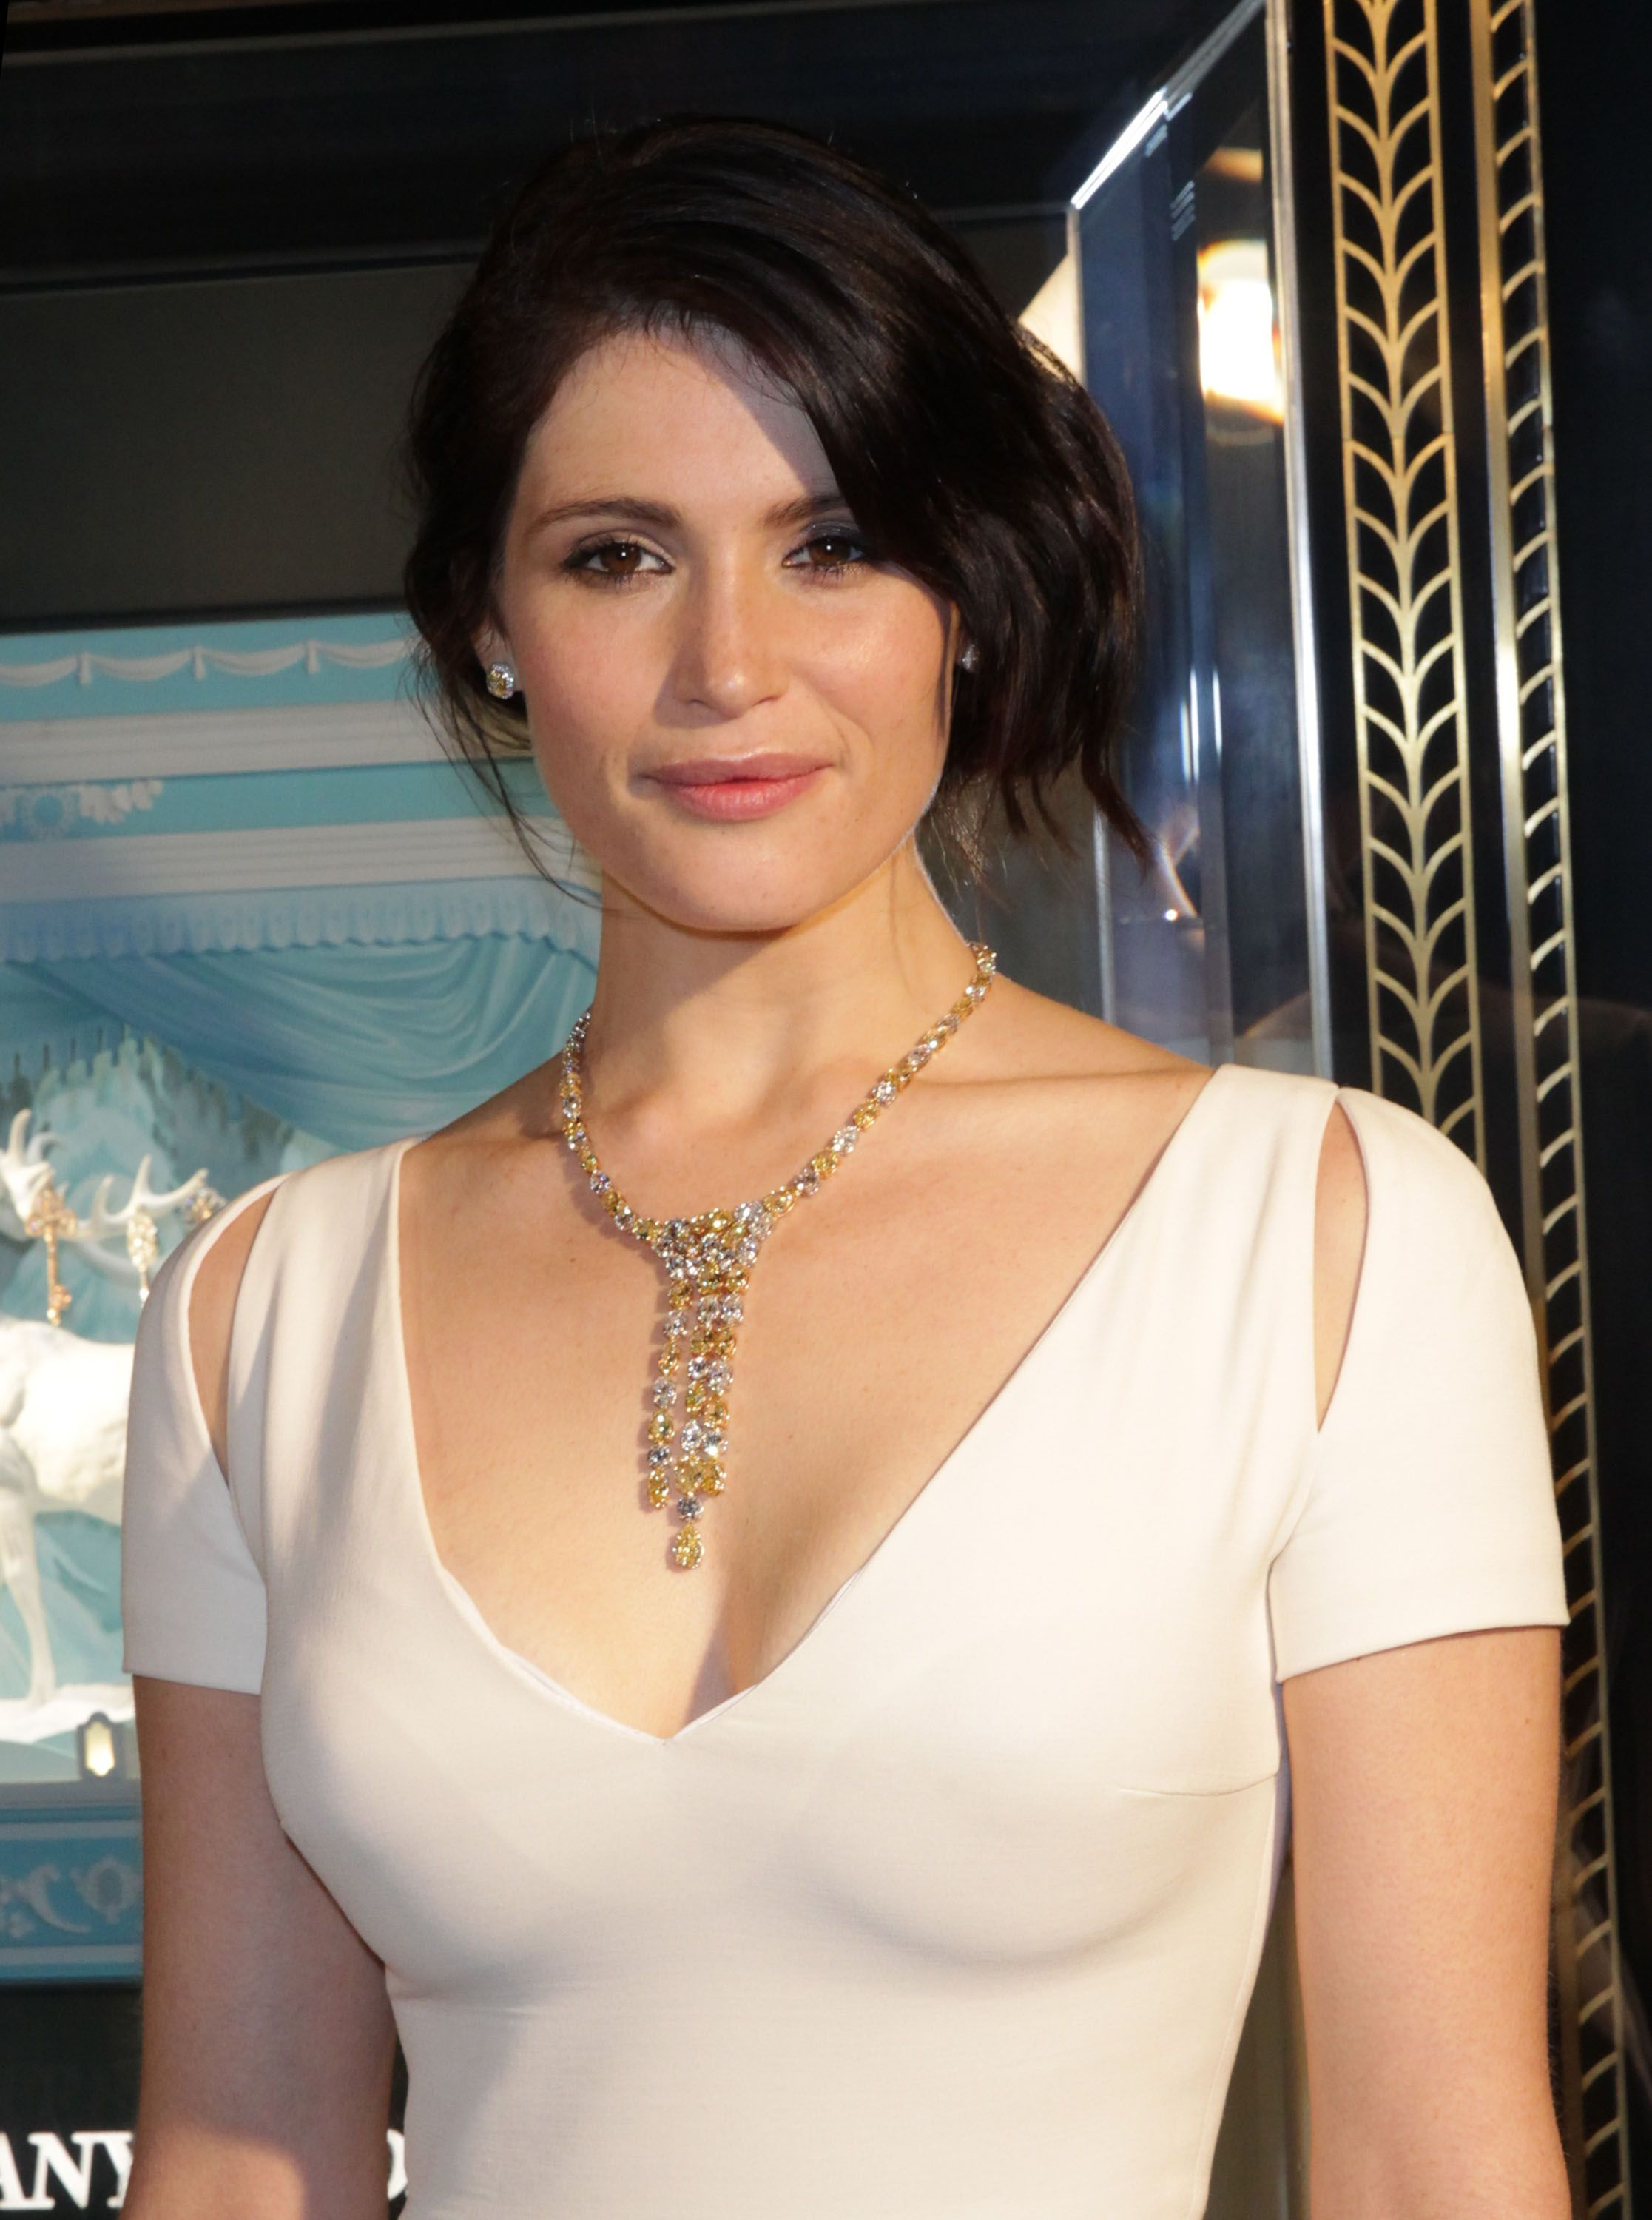 gemma arterton кинопоискgemma arterton 2016, gemma arterton 2017, gemma arterton wiki, gemma arterton instagram, gemma arterton tumblr gif, gemma arterton movies, gemma arterton james bond, gemma arterton вк, gemma arterton facebook, gemma arterton imdb, gemma arterton 100 streets, gemma arterton fan, gemma arterton кинопоиск, gemma arterton bond, gemma arterton interview, gemma arterton wdw, gemma arterton films, gemma arterton kimdir, gemma arterton hd wallpapers, gemma arterton fashion spot